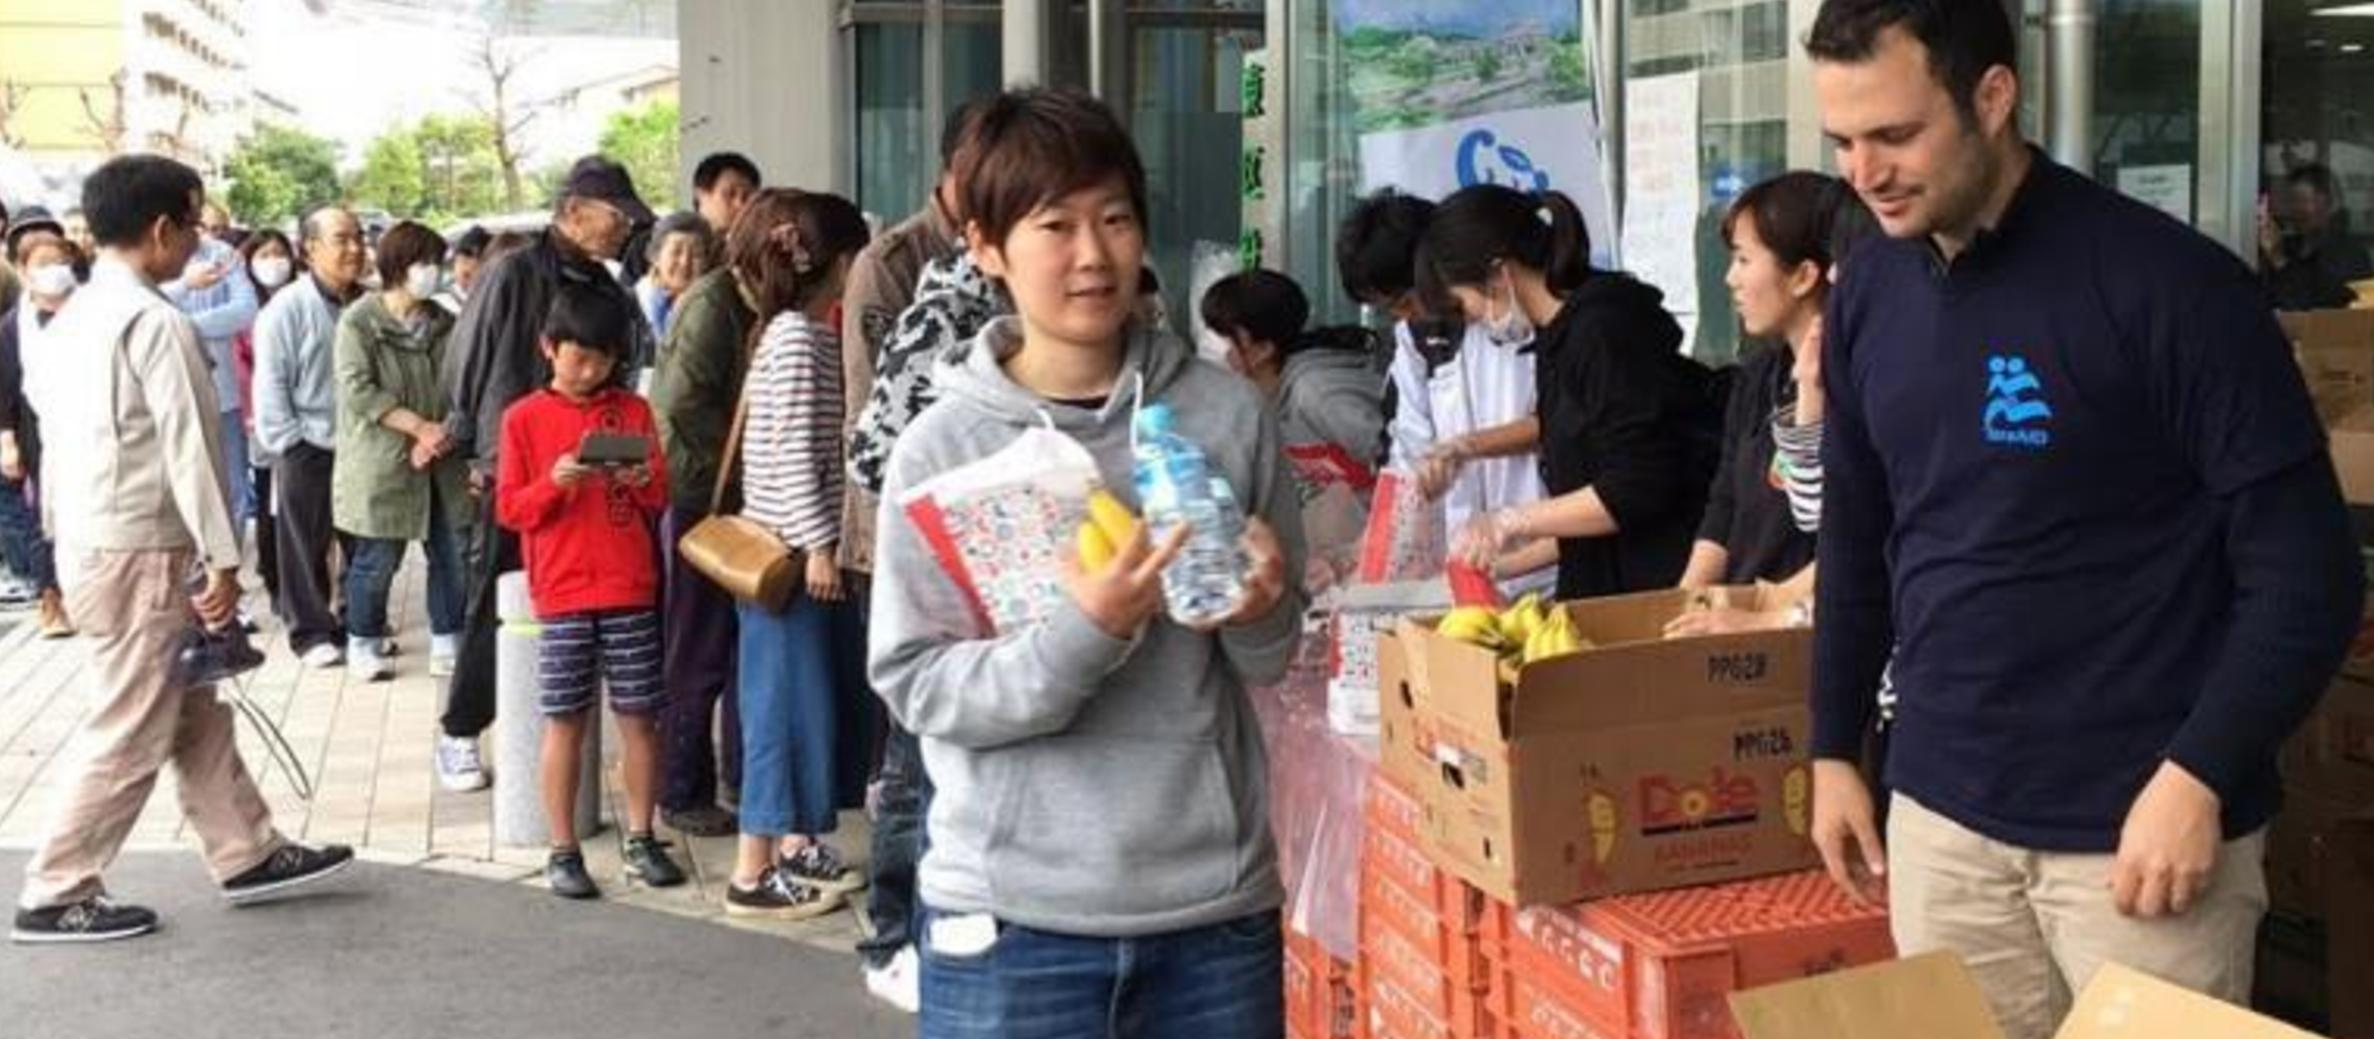 Israeli aid teams helping in Japan and Ecuador